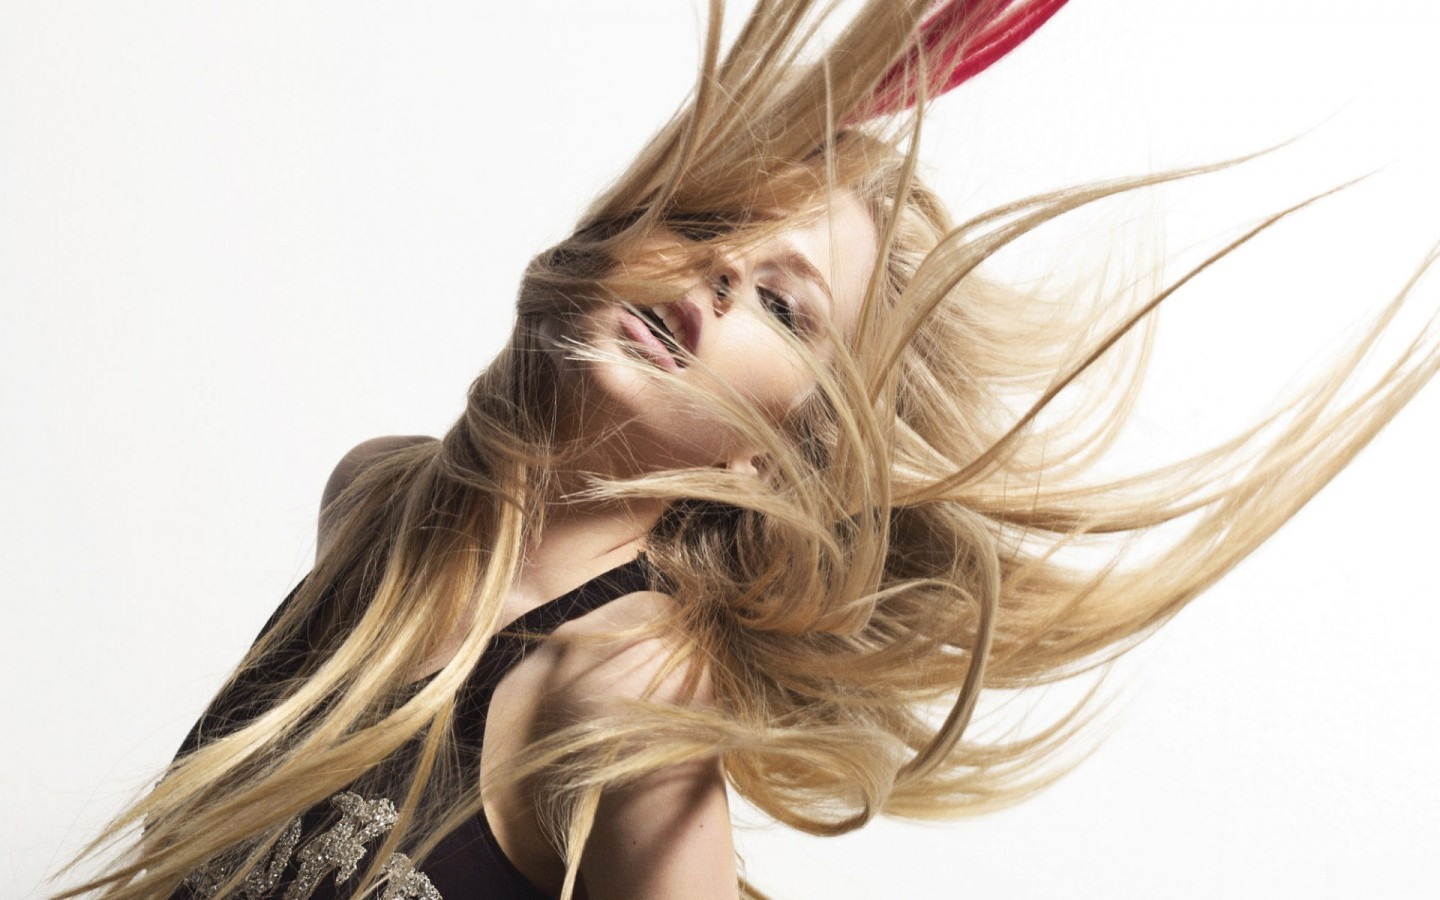 Avril Lavigne 52 Wallpapers HD Wallpapers ID 11403